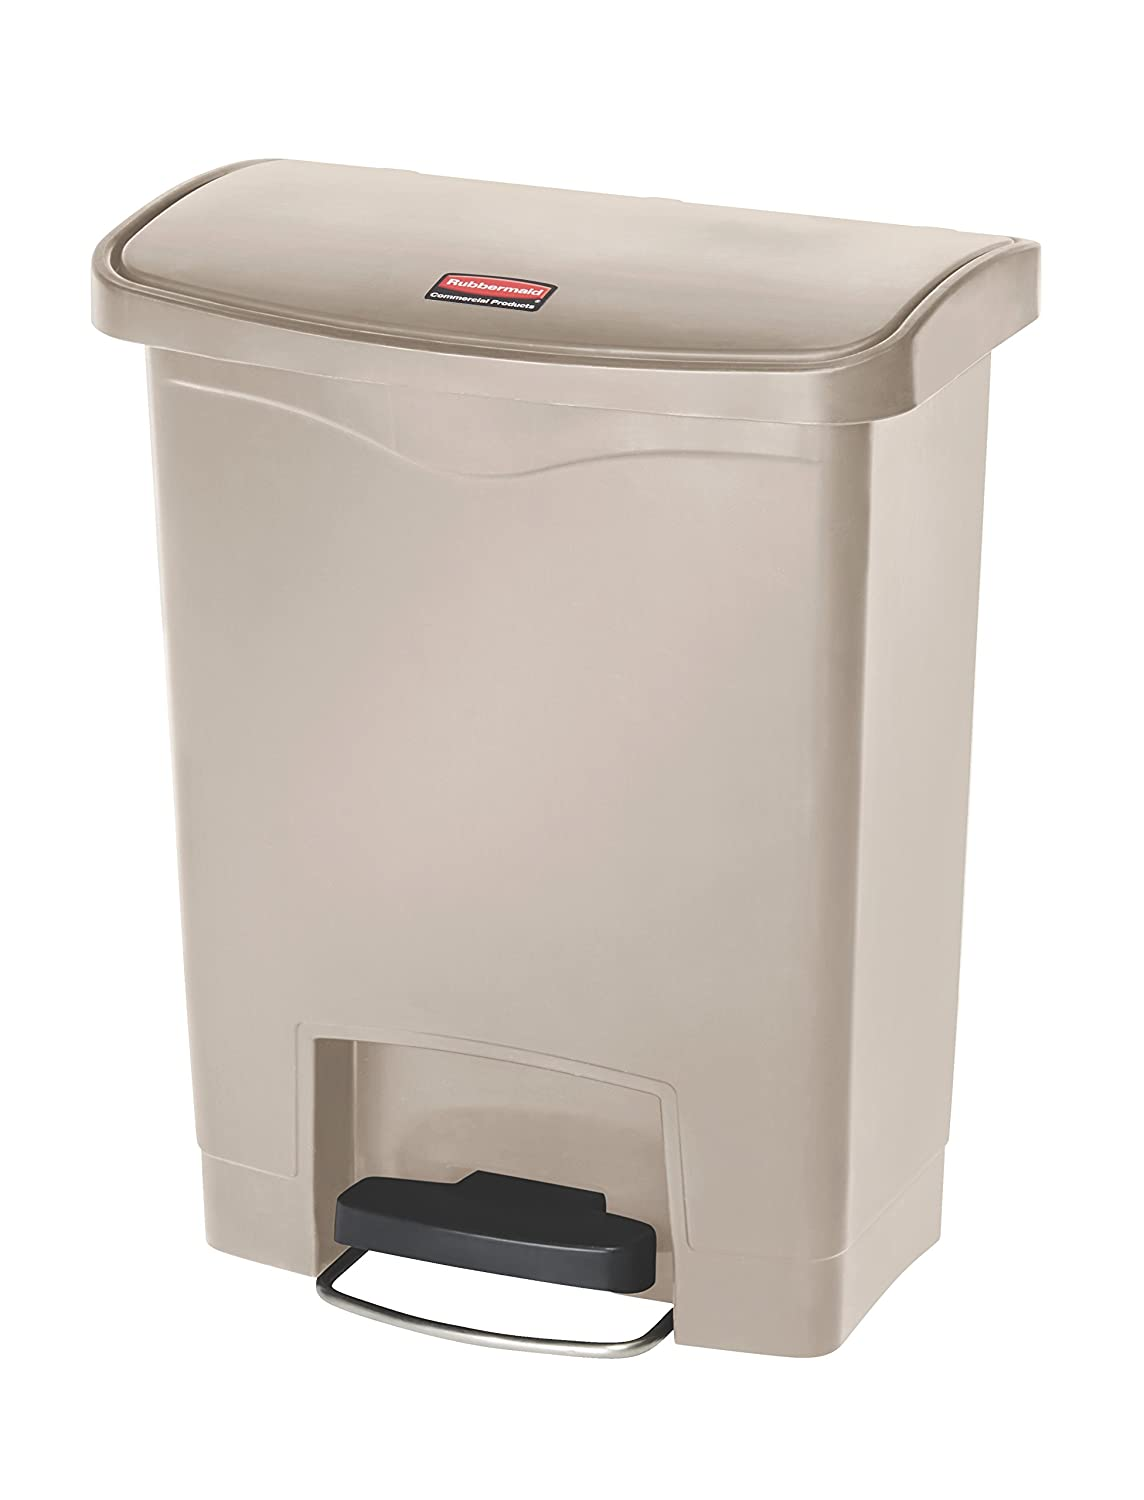 Rubbermaid Commercial Products Slim Jim Step-On Plastic Trash/Garbage Cans, 8 Gallon, Plastic Front Step Step-On, Beige